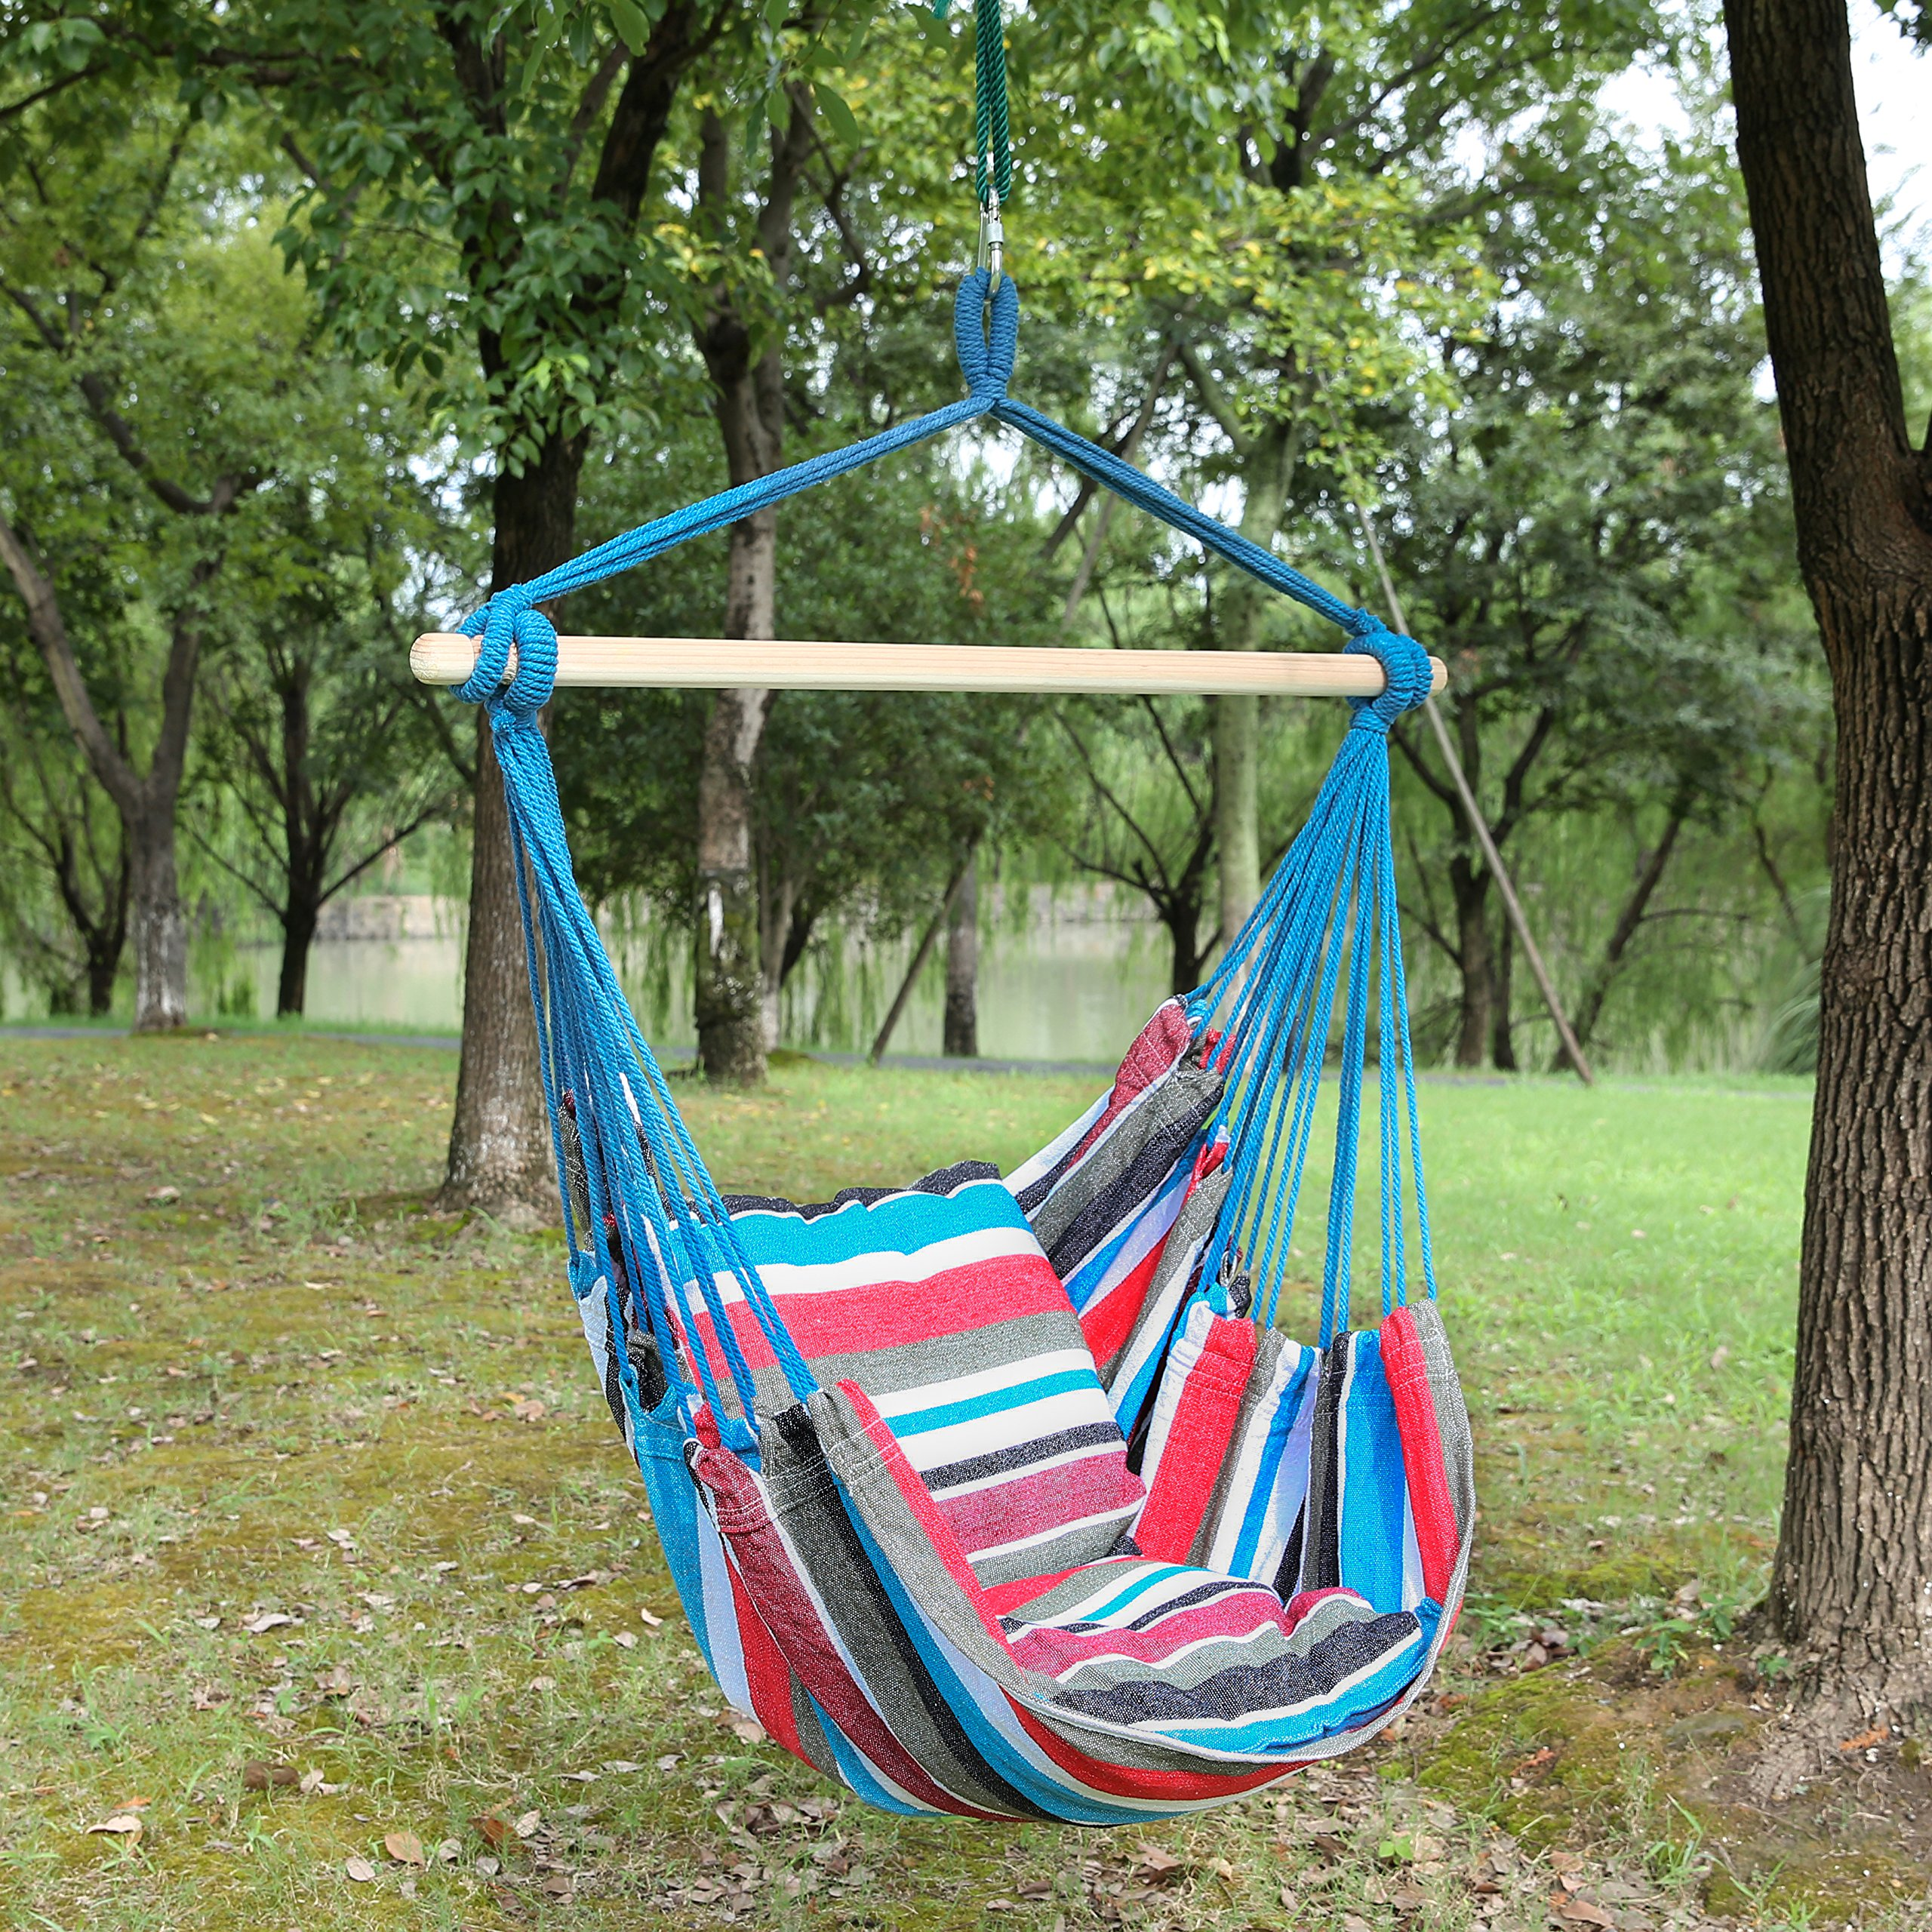 Blissun Hanging Hammock Chair, Hanging Swing Chair with Two Cushions, 34 Inch Wide Seat (Cool Breeze) by Blissun (Image #8)